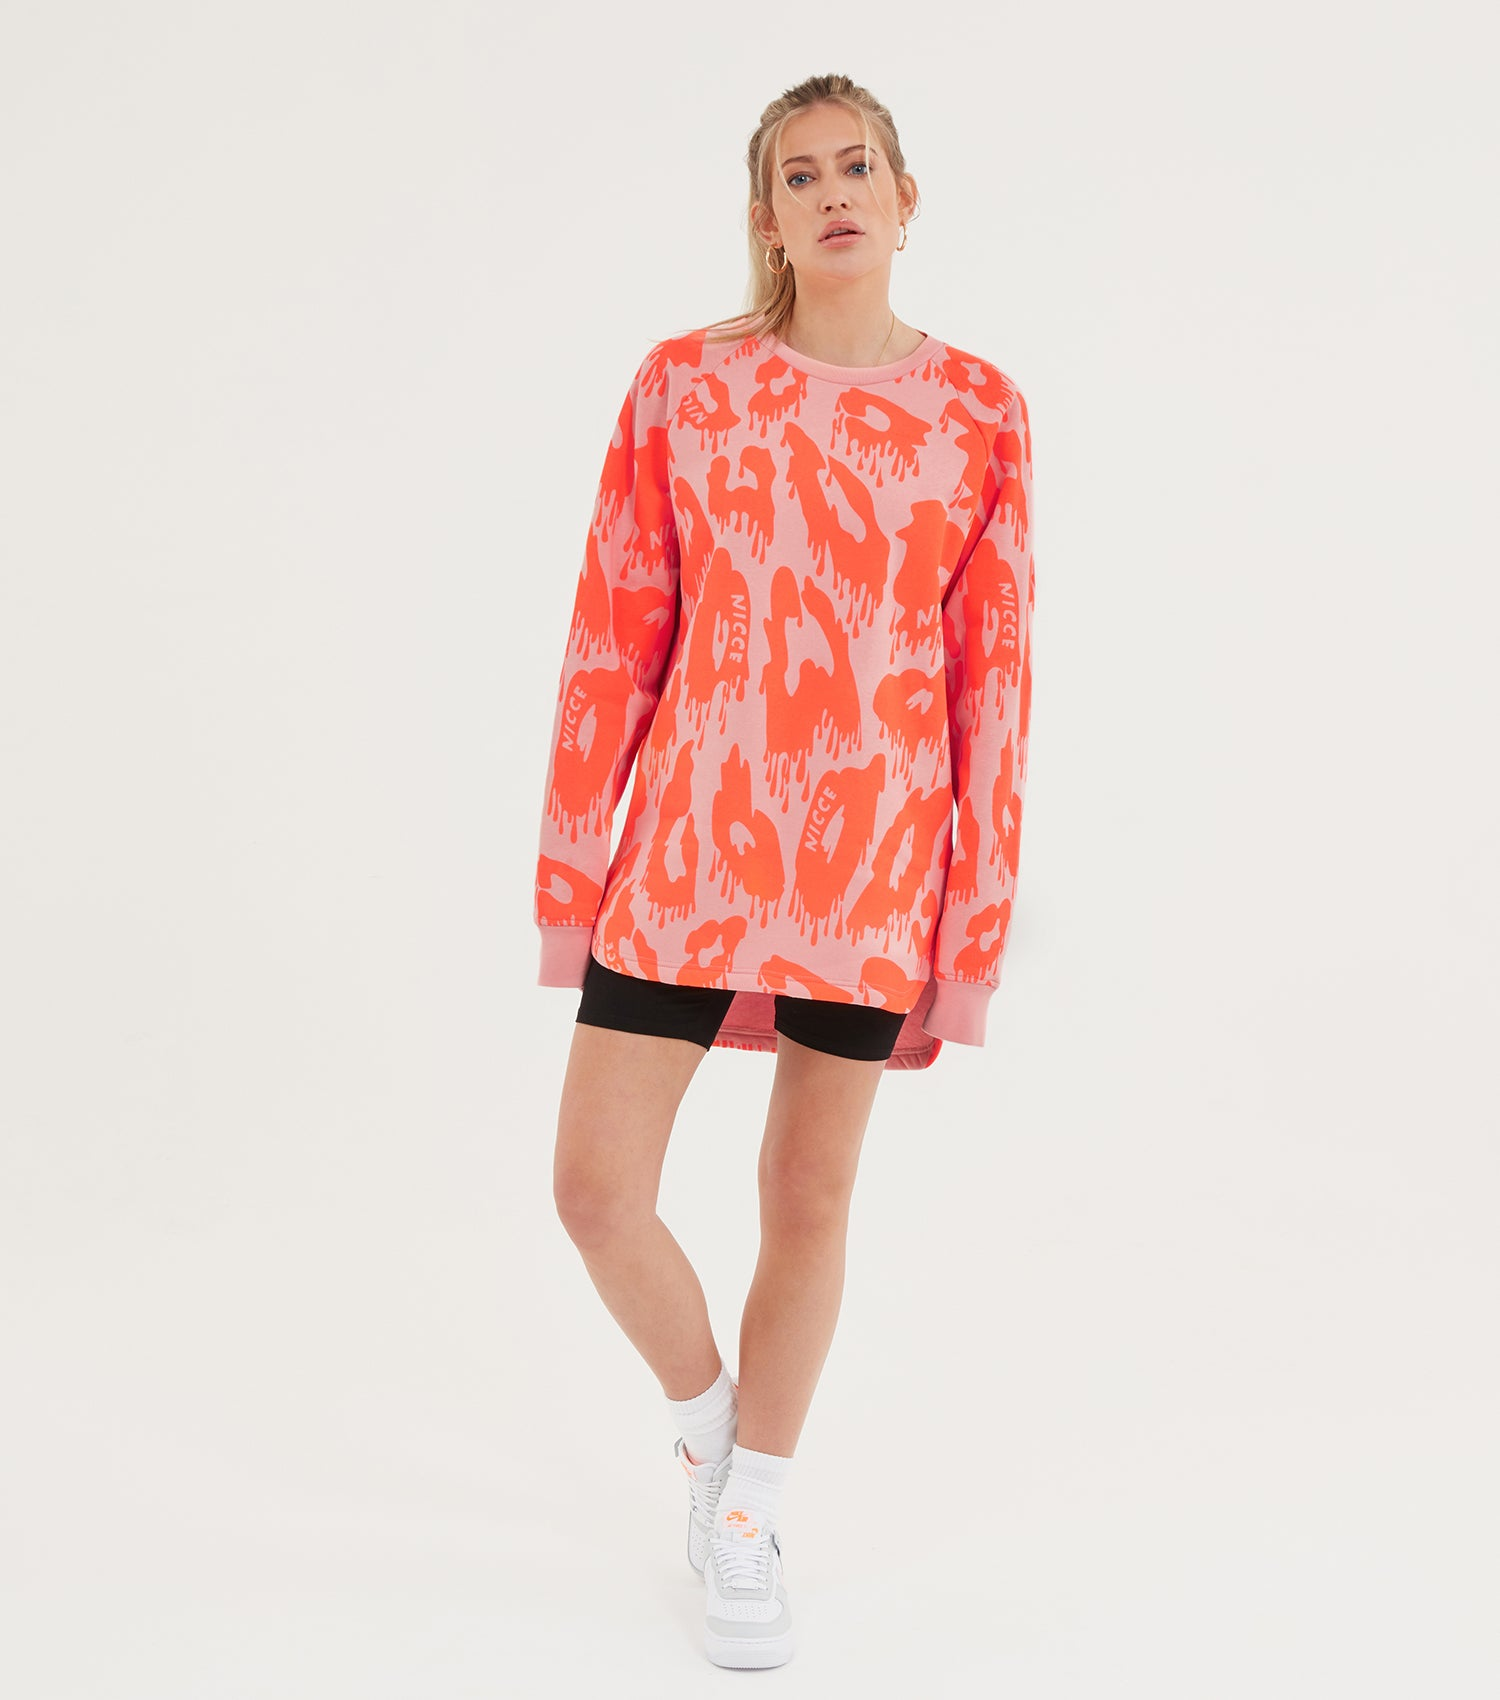 NICCE Womens Mime Sweat Dress | Candlelight Peach/ Fiery Coral, Dresses